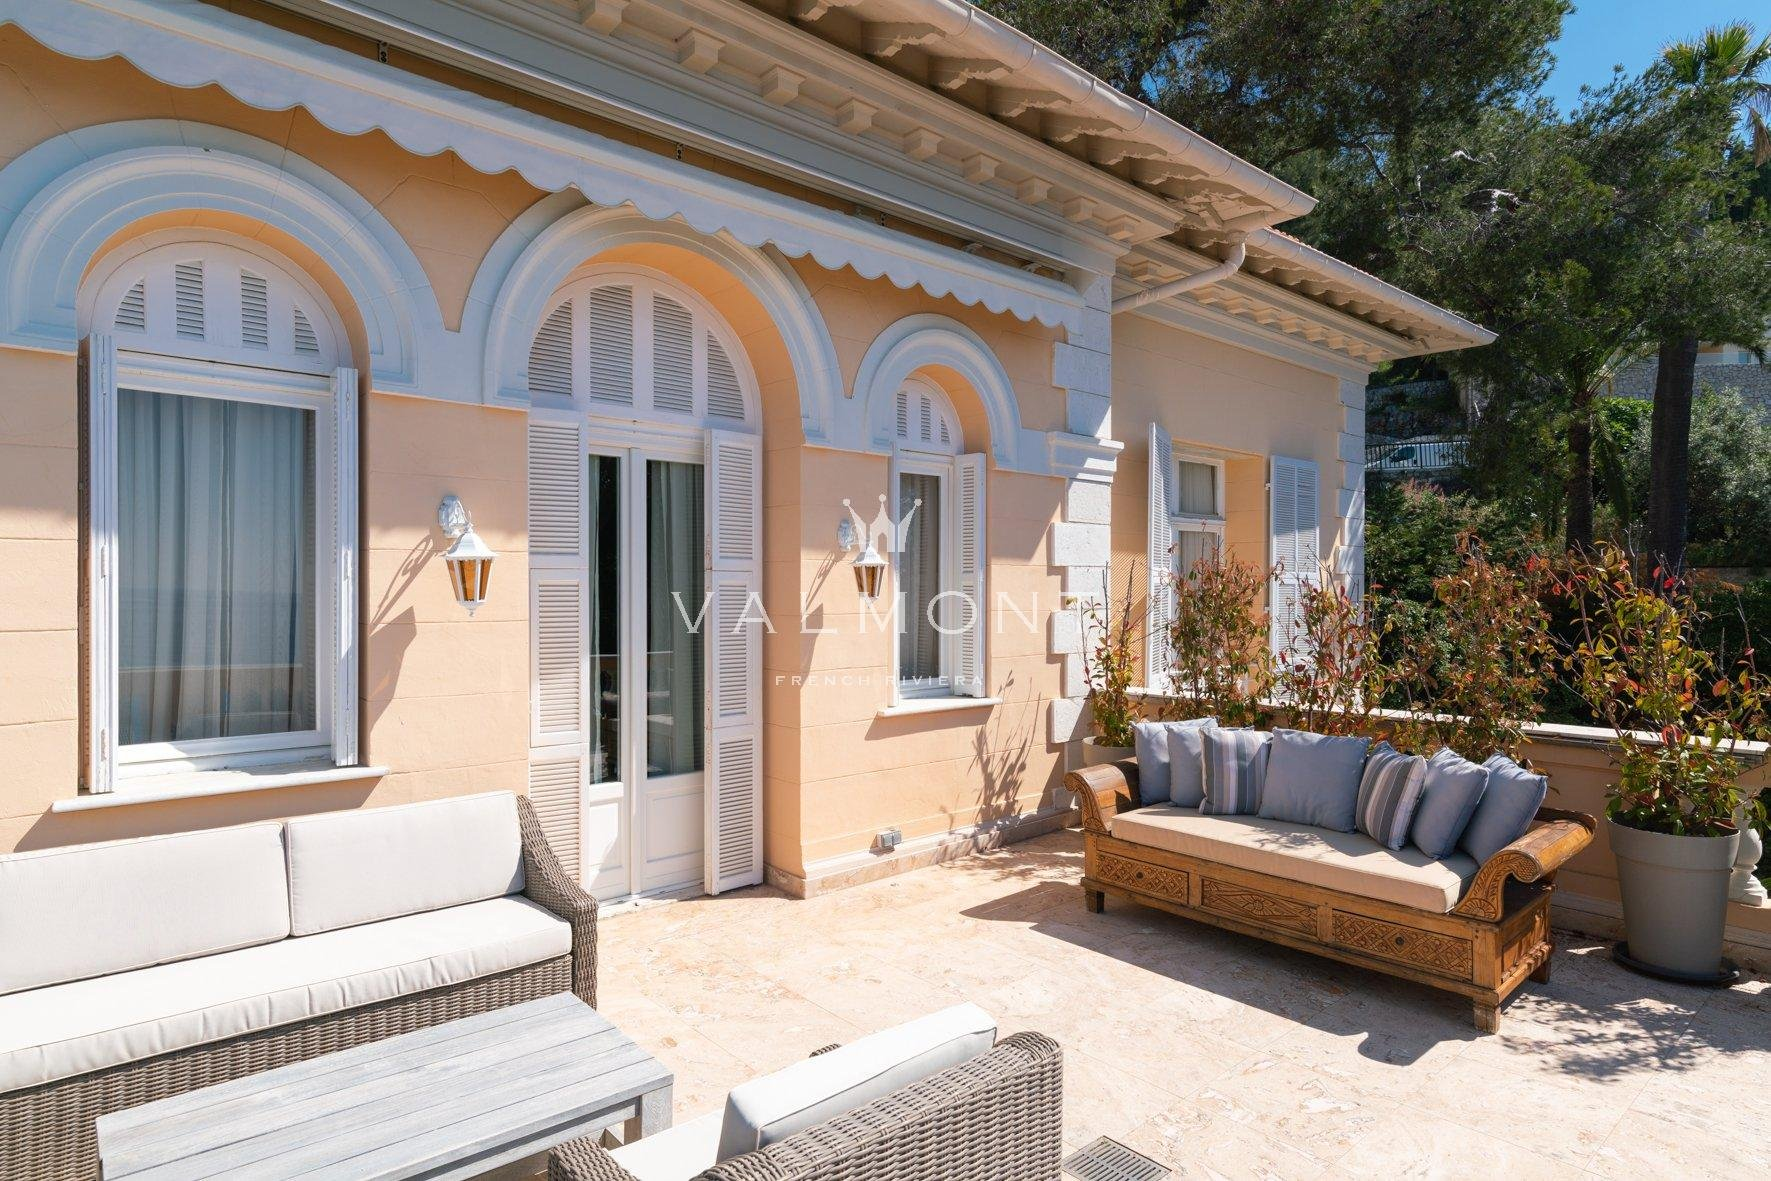 Mythic Belle Epoque villa